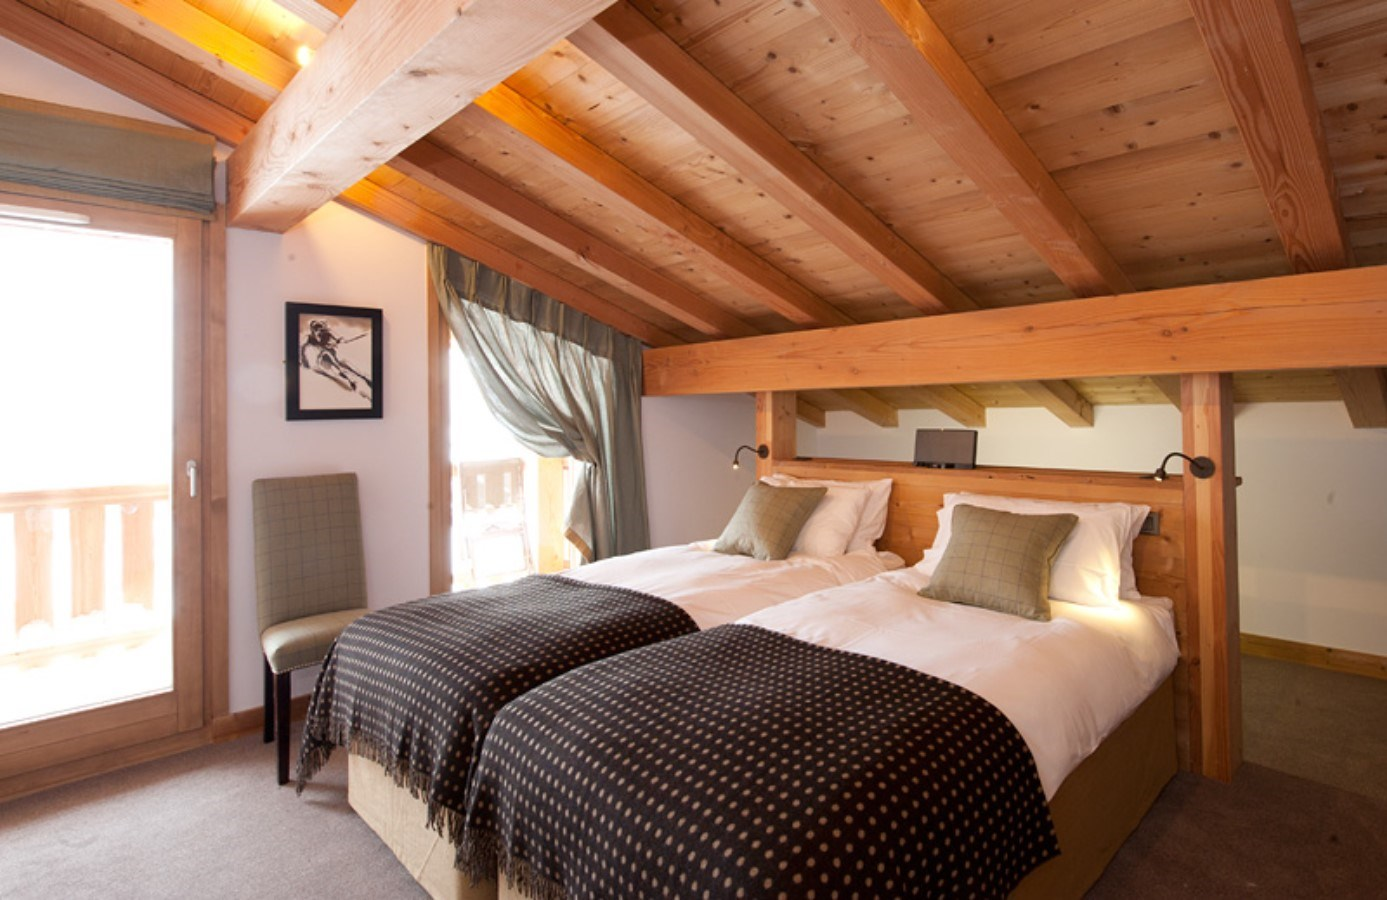 Lodge Bedroom Altitude Lodge Luxury Ski Chalet In Les Gets Vip Ski